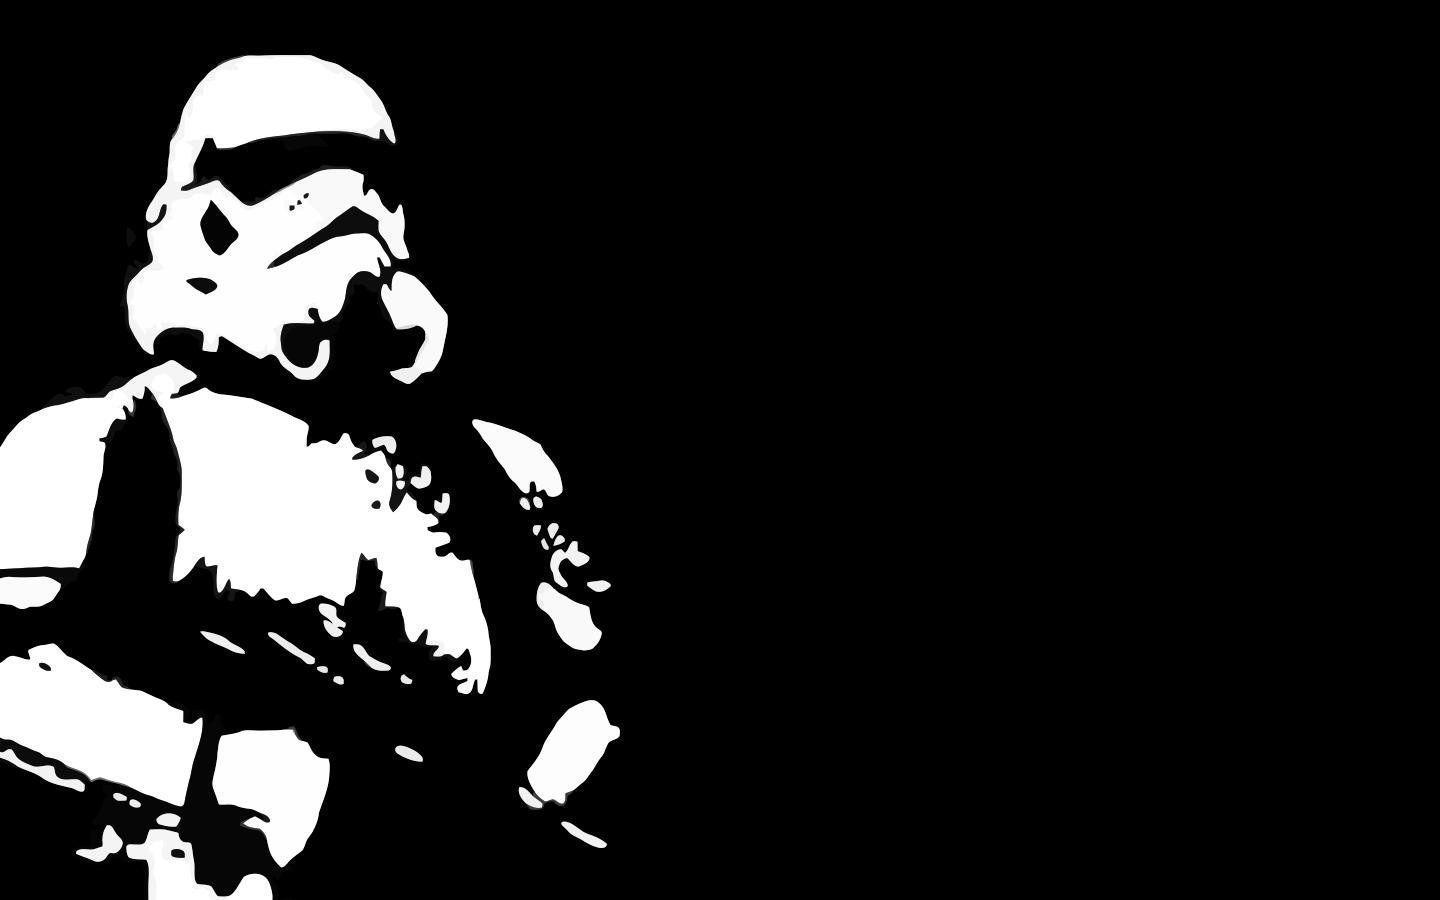 Star Wars stormtroopers black background wallpaper | 1440x900 ...